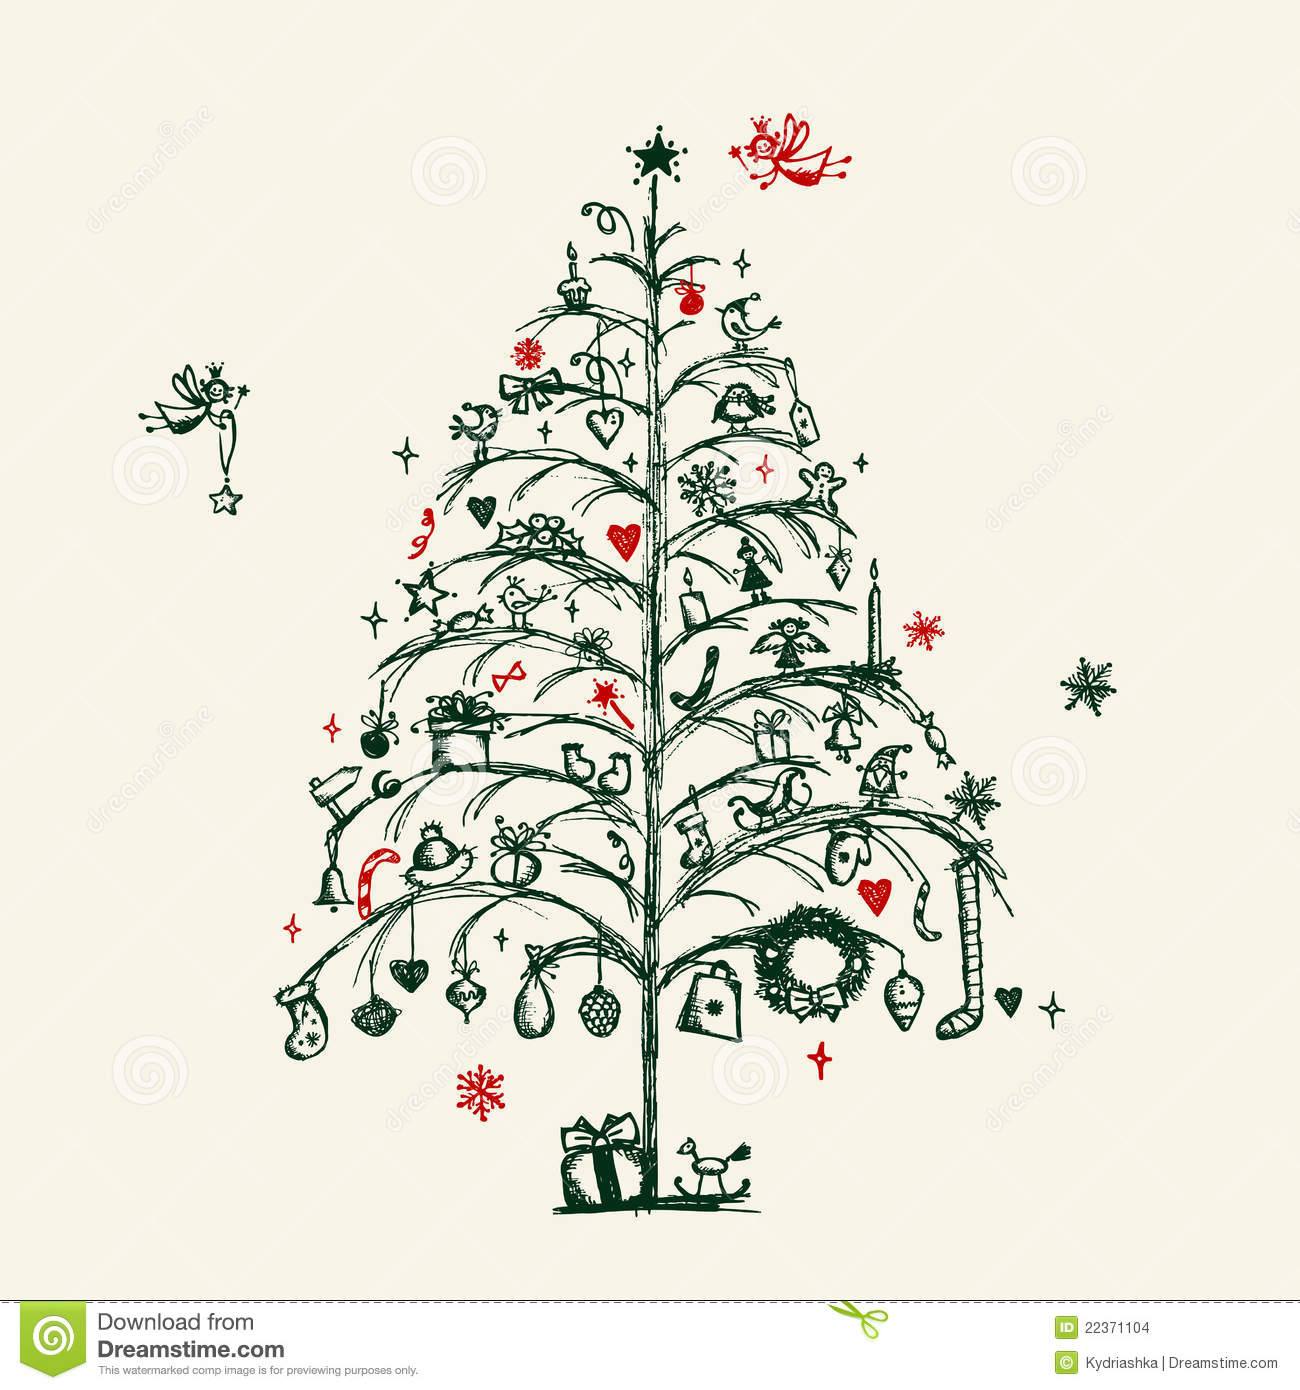 Christmas Tree Sketch Stock Illustration. Image Of Ornament - 22371104